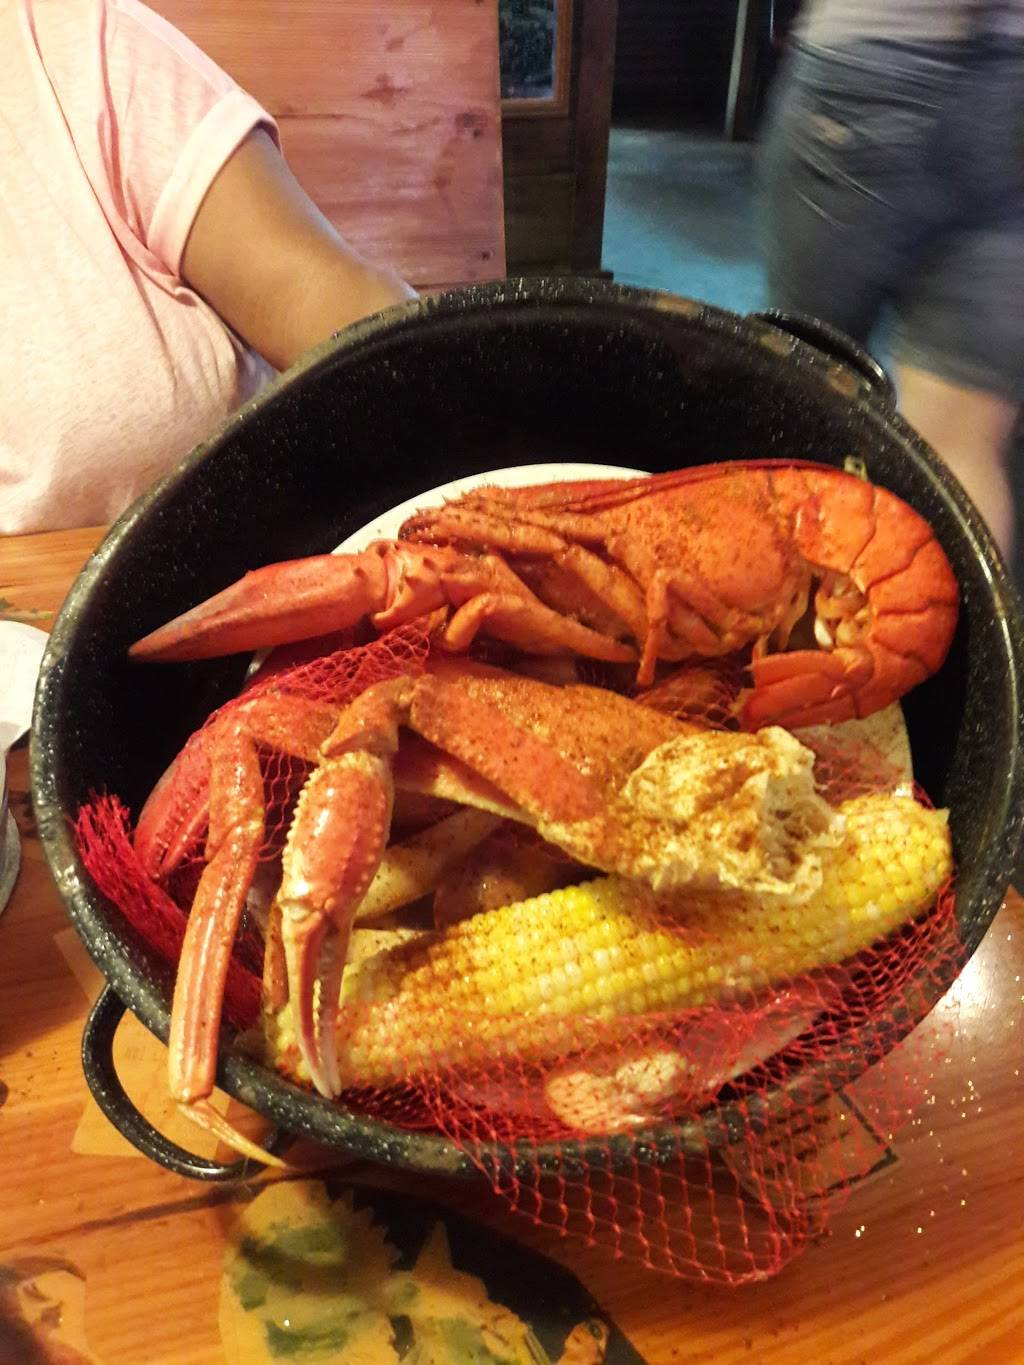 Joes Crab Shack   restaurant   2730 Gulf to Bay Blvd, Clearwater, FL 33759, USA   7277998530 OR +1 727-799-8530